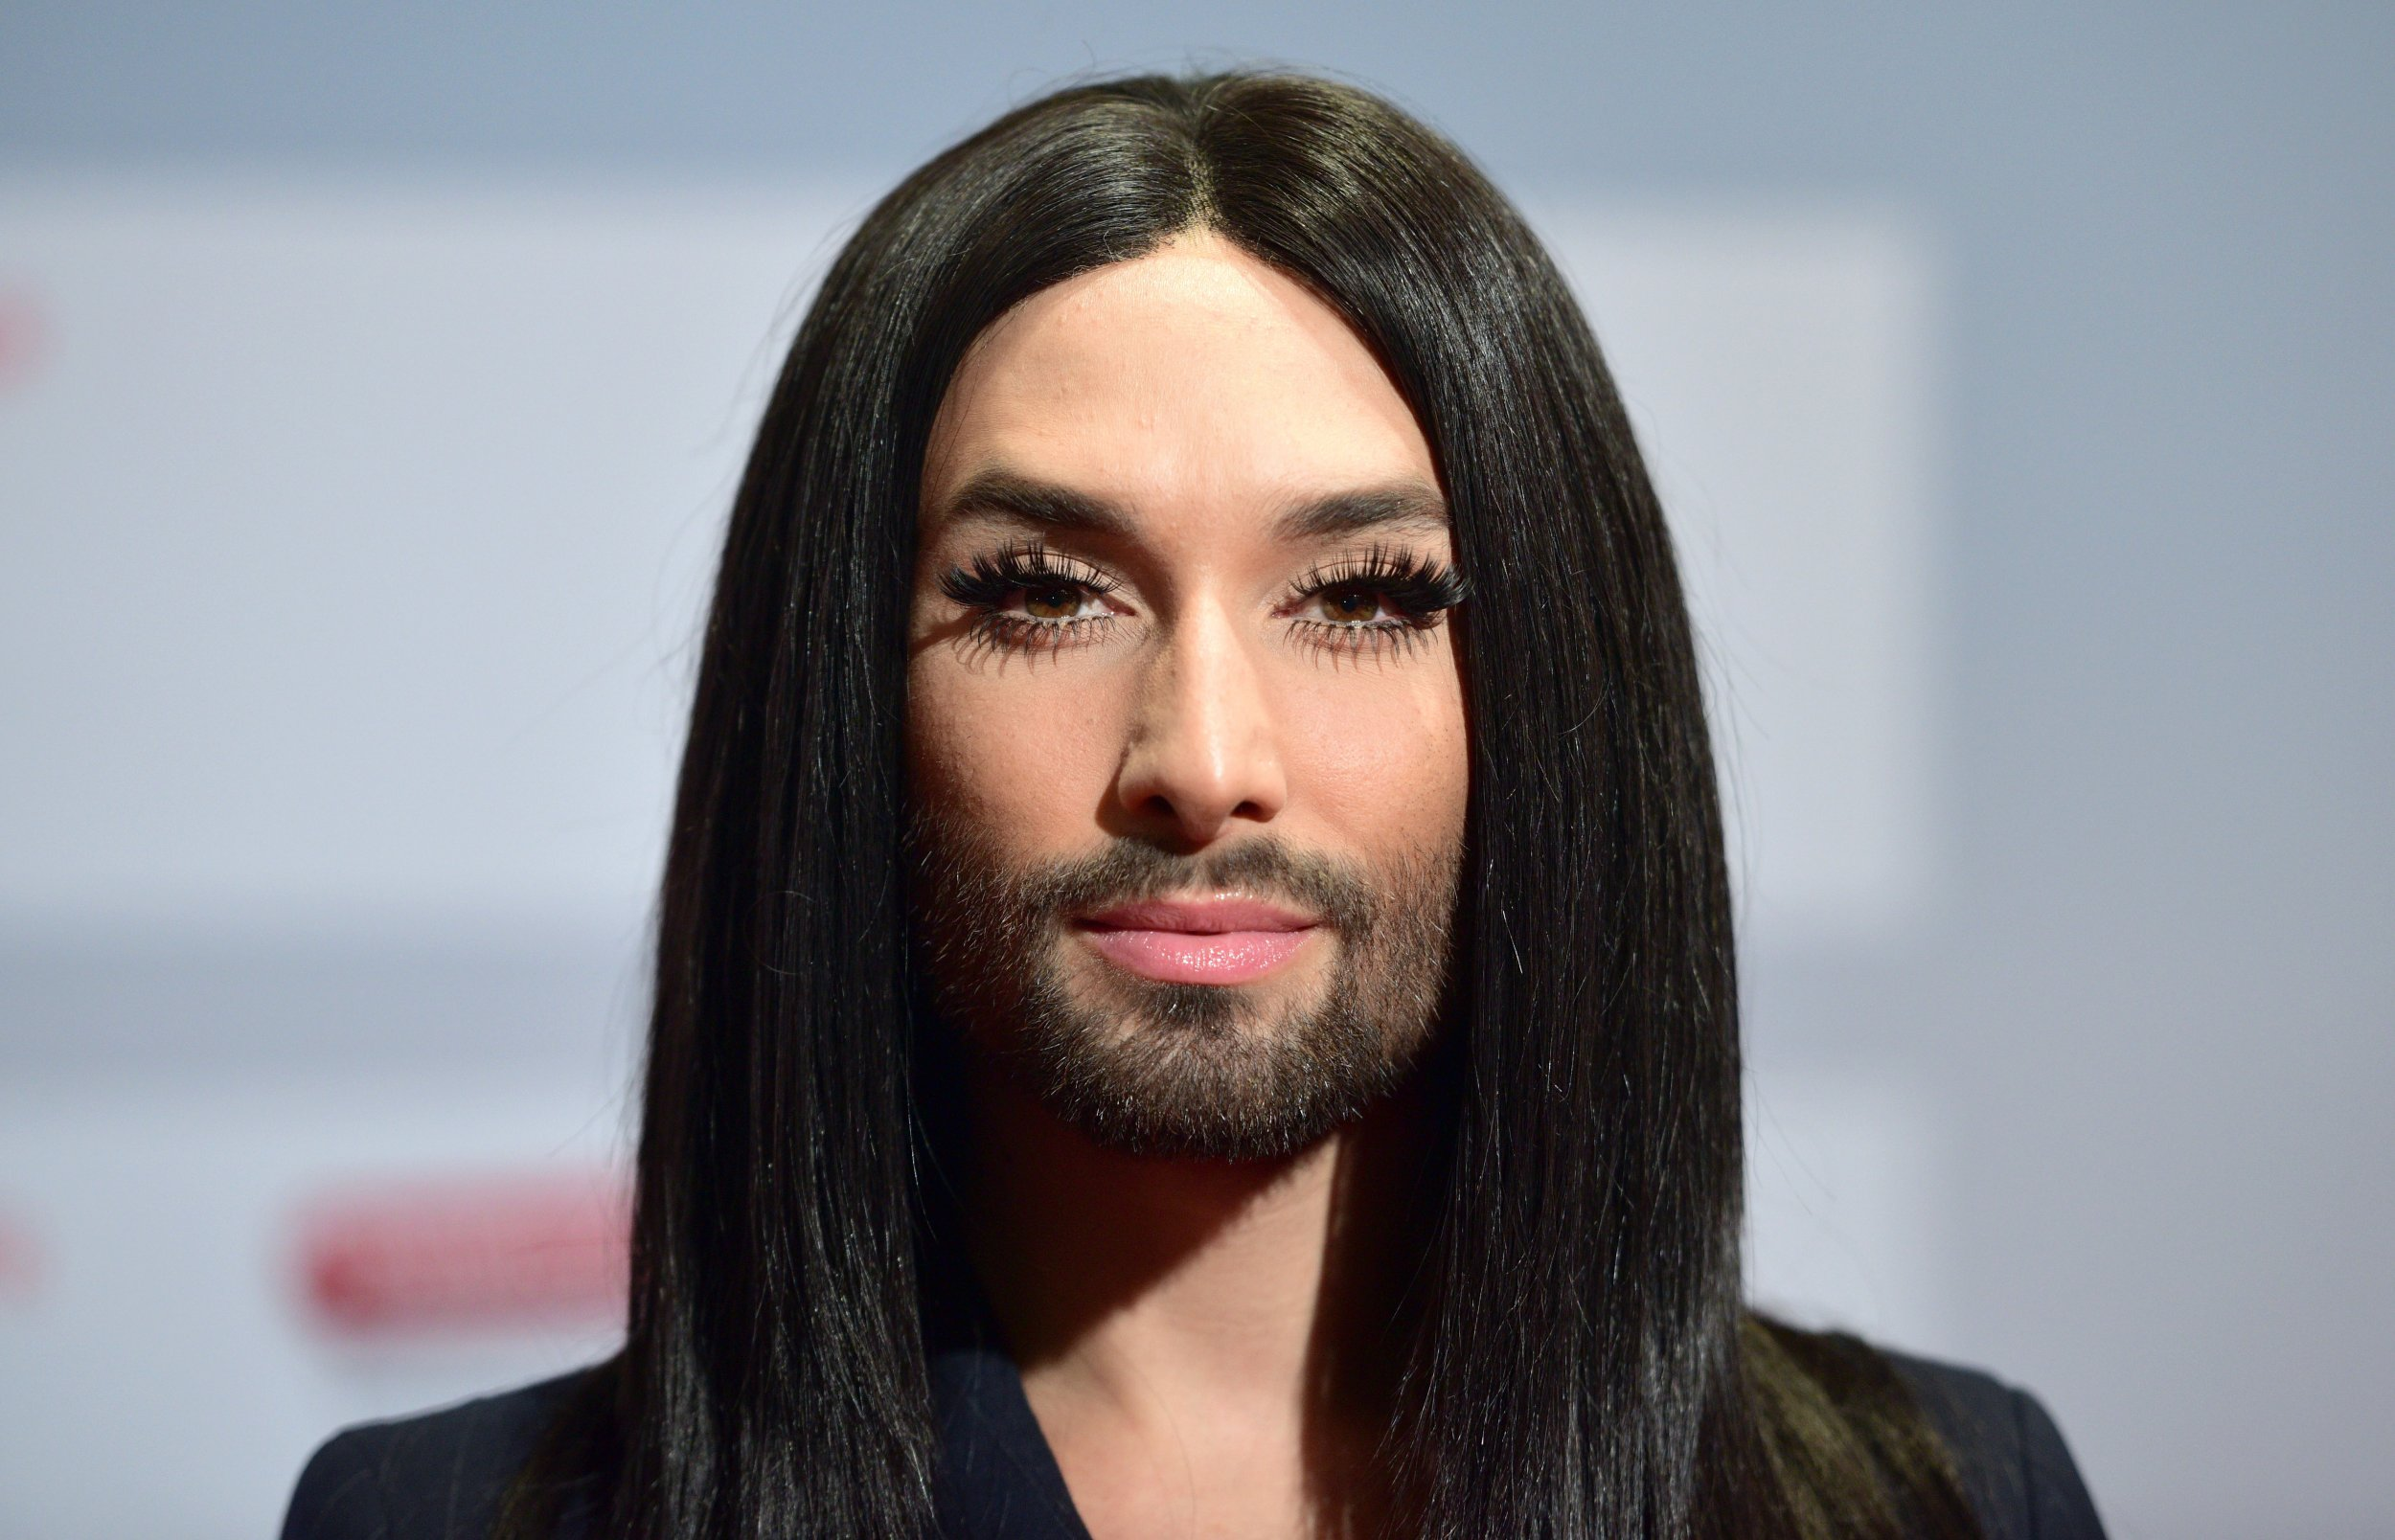 Conchita Wurst Forced to Reveal HIV Status by Expartner